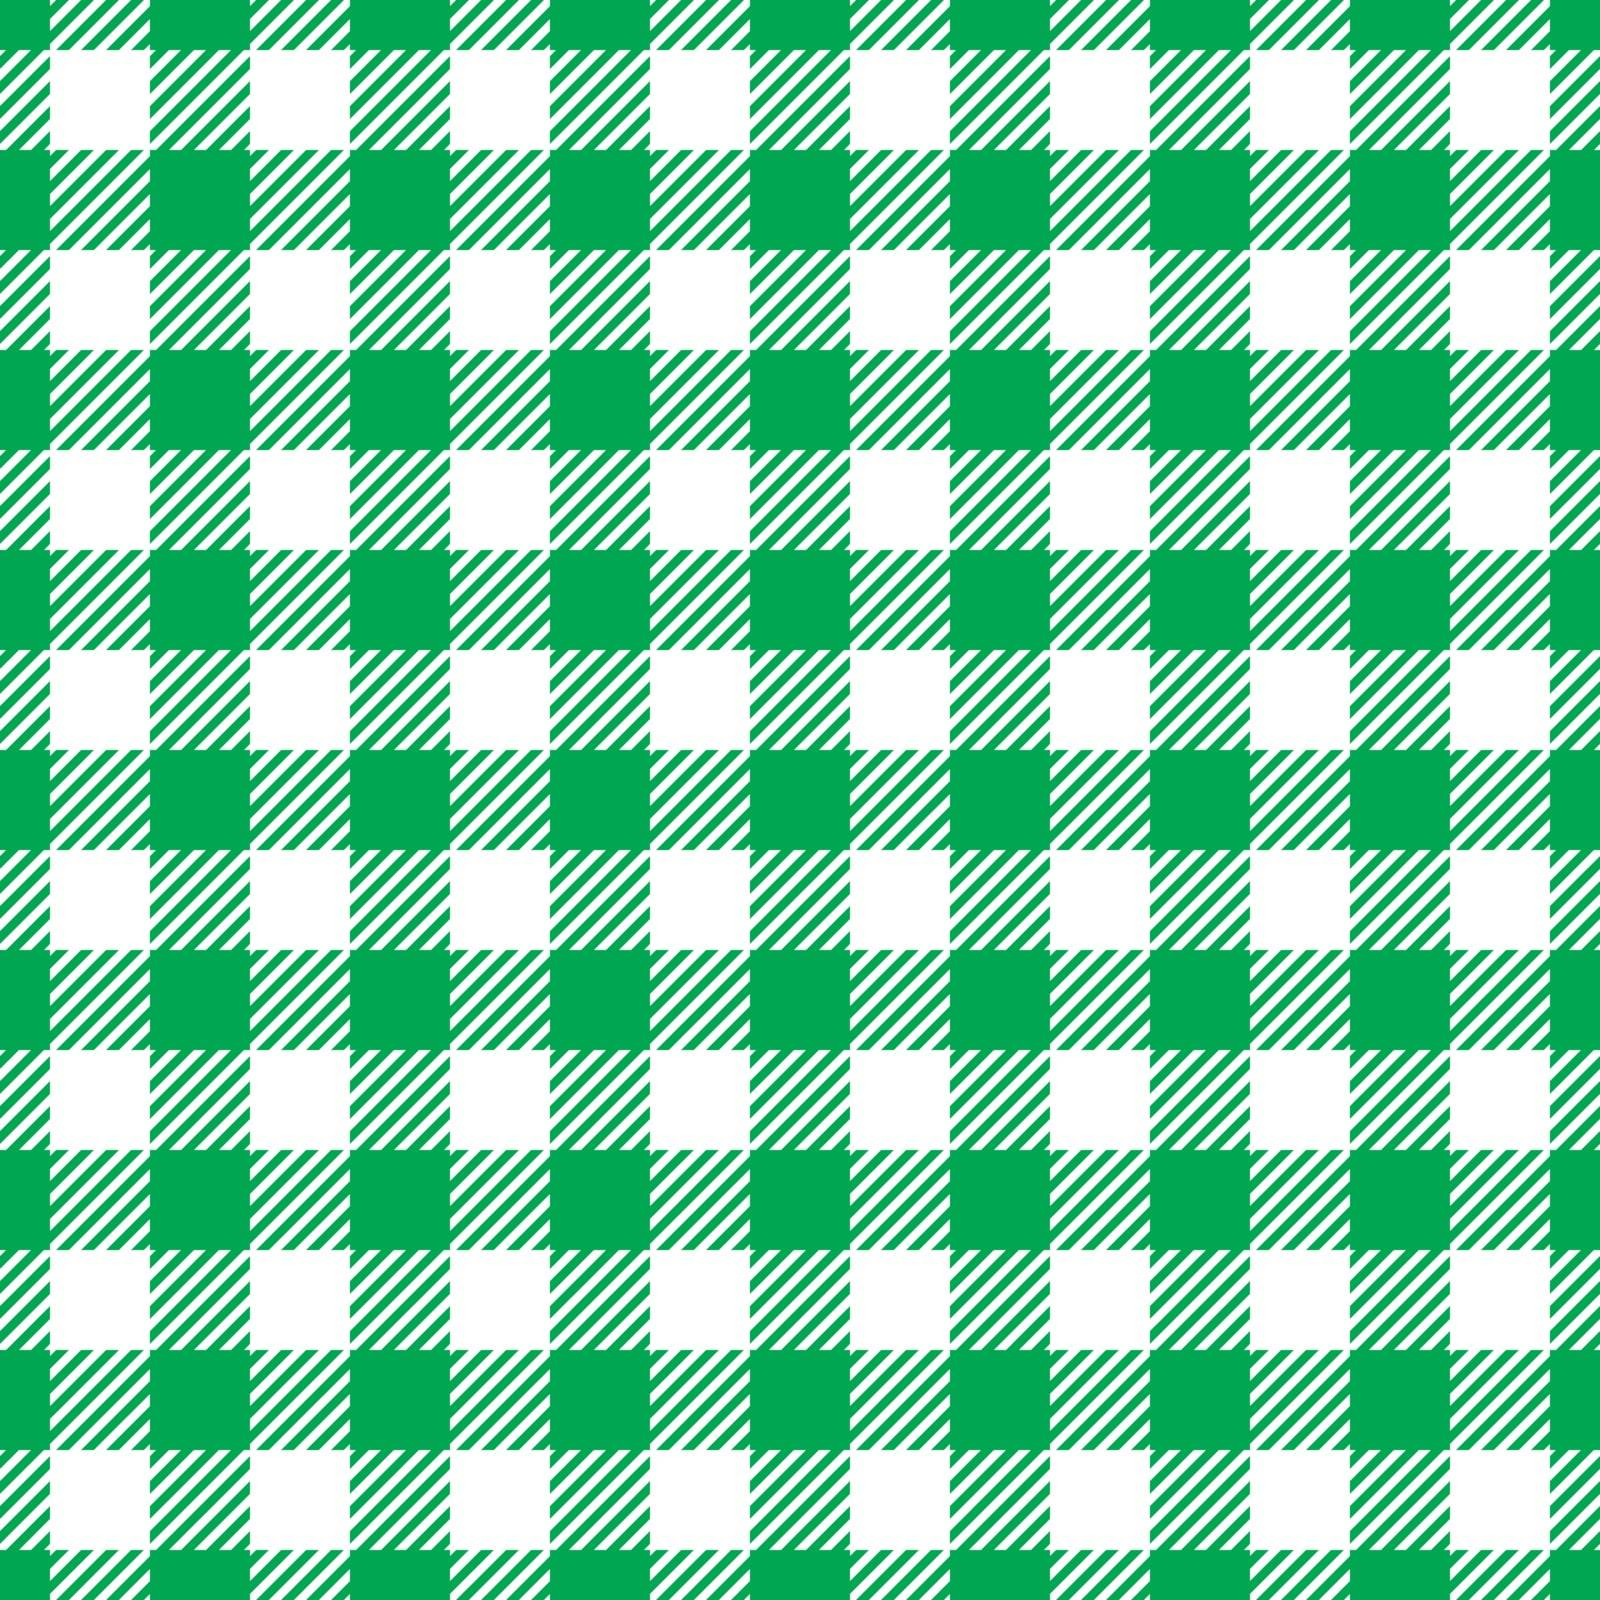 Seamless Green White Traditional Gingham Pattern Fabric Texture